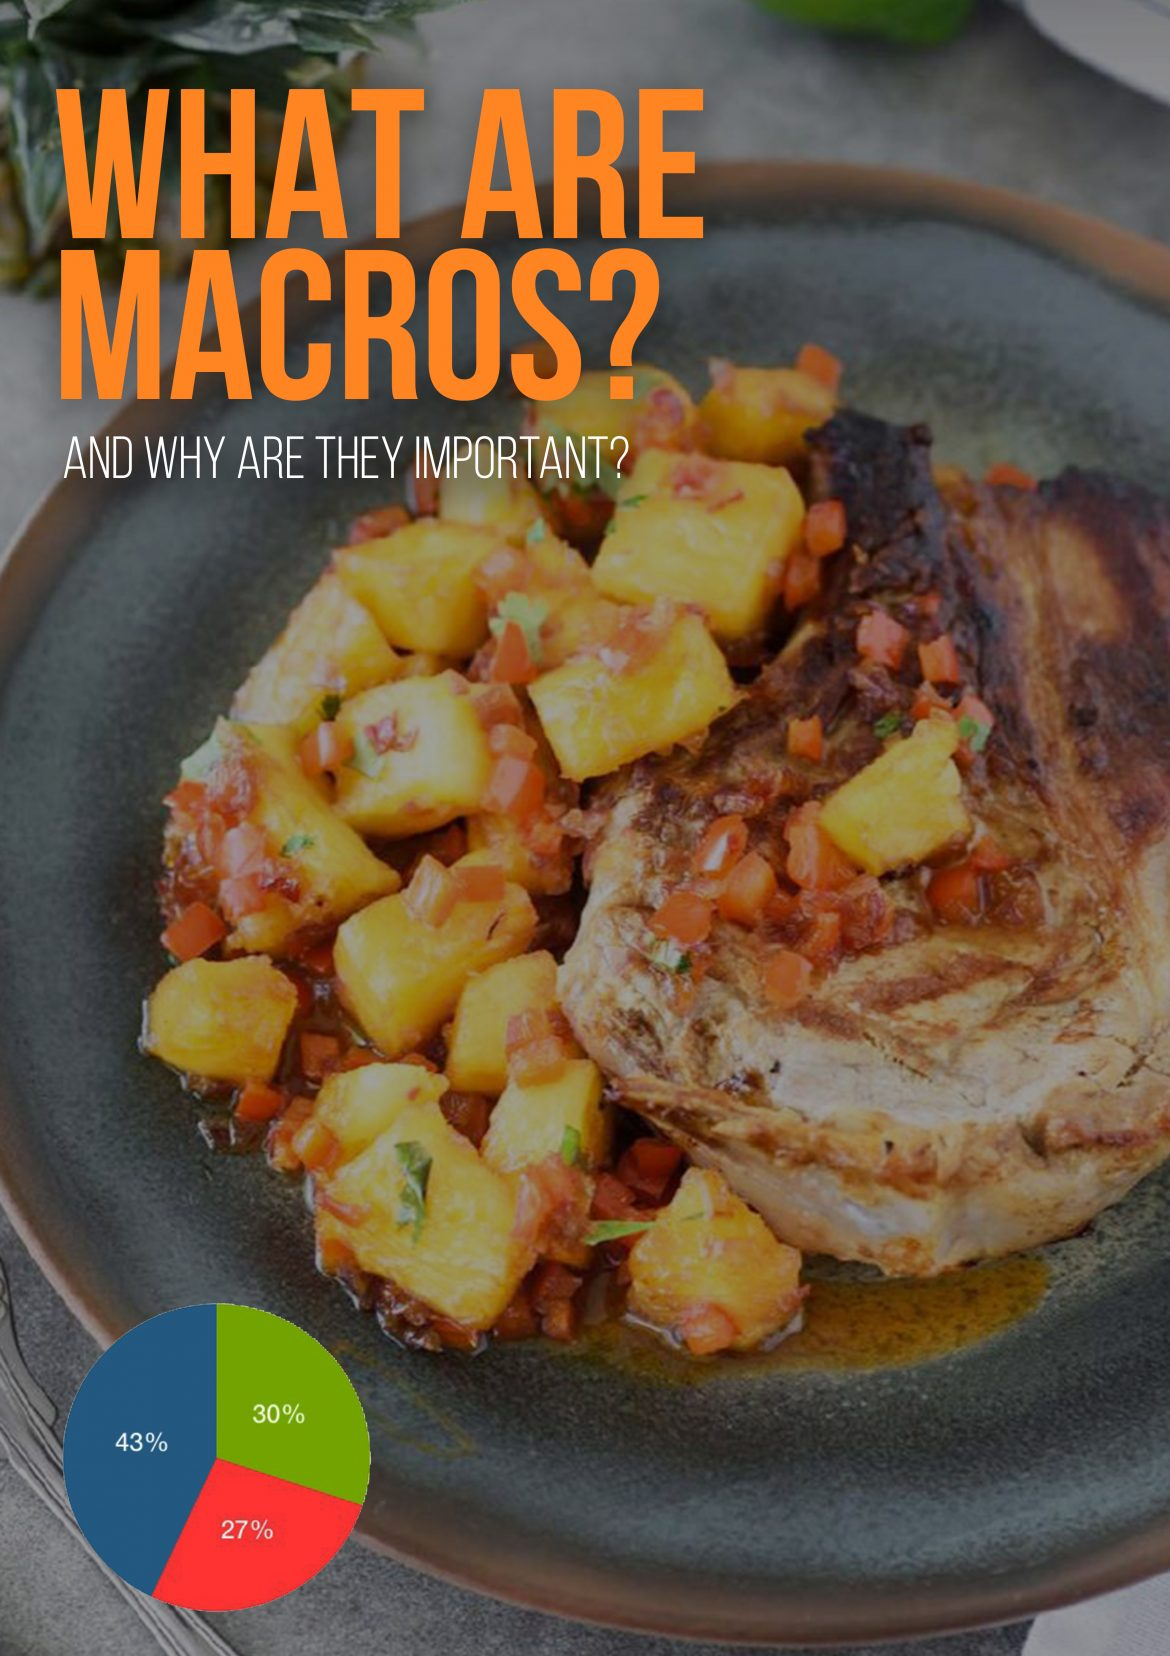 What are Macros?